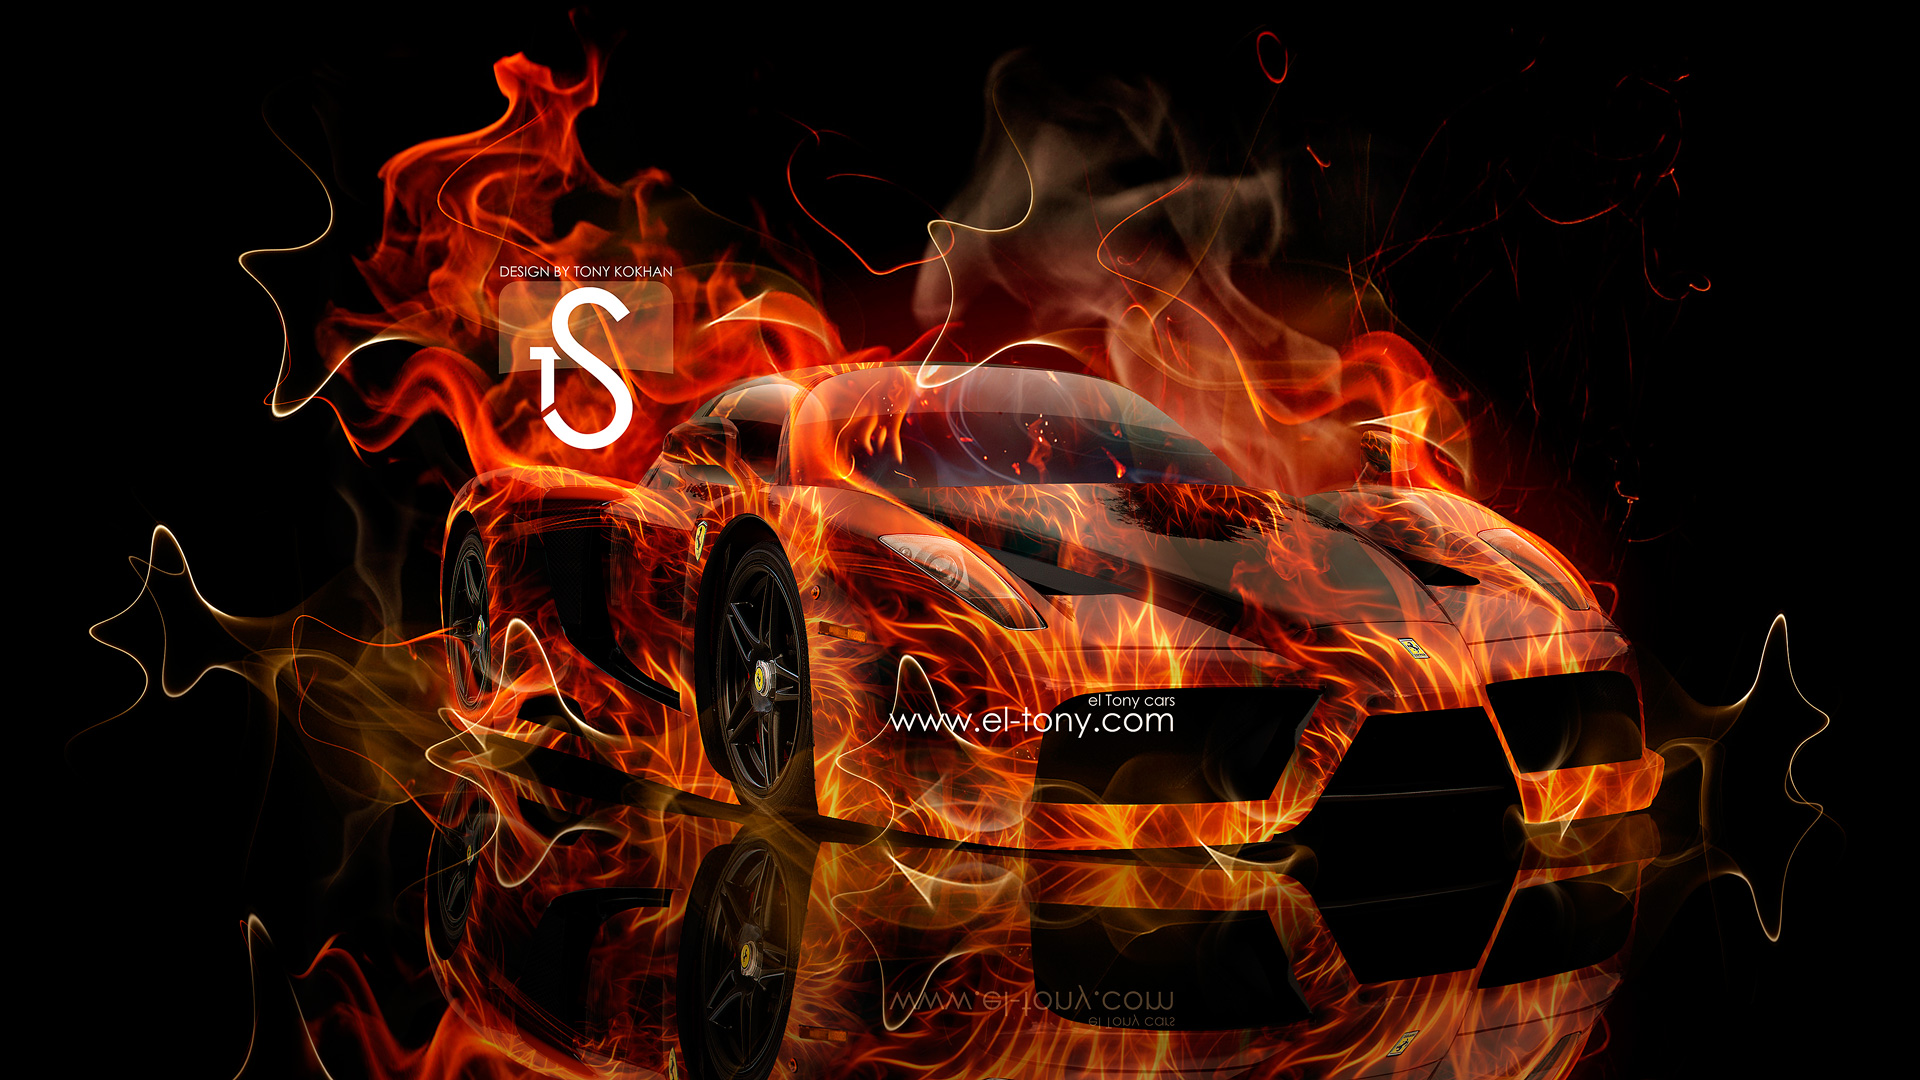 Ferrari Enzo Fire Car 2013 Abstract Smoke HD Wallpapers design by Tony 1920x1080